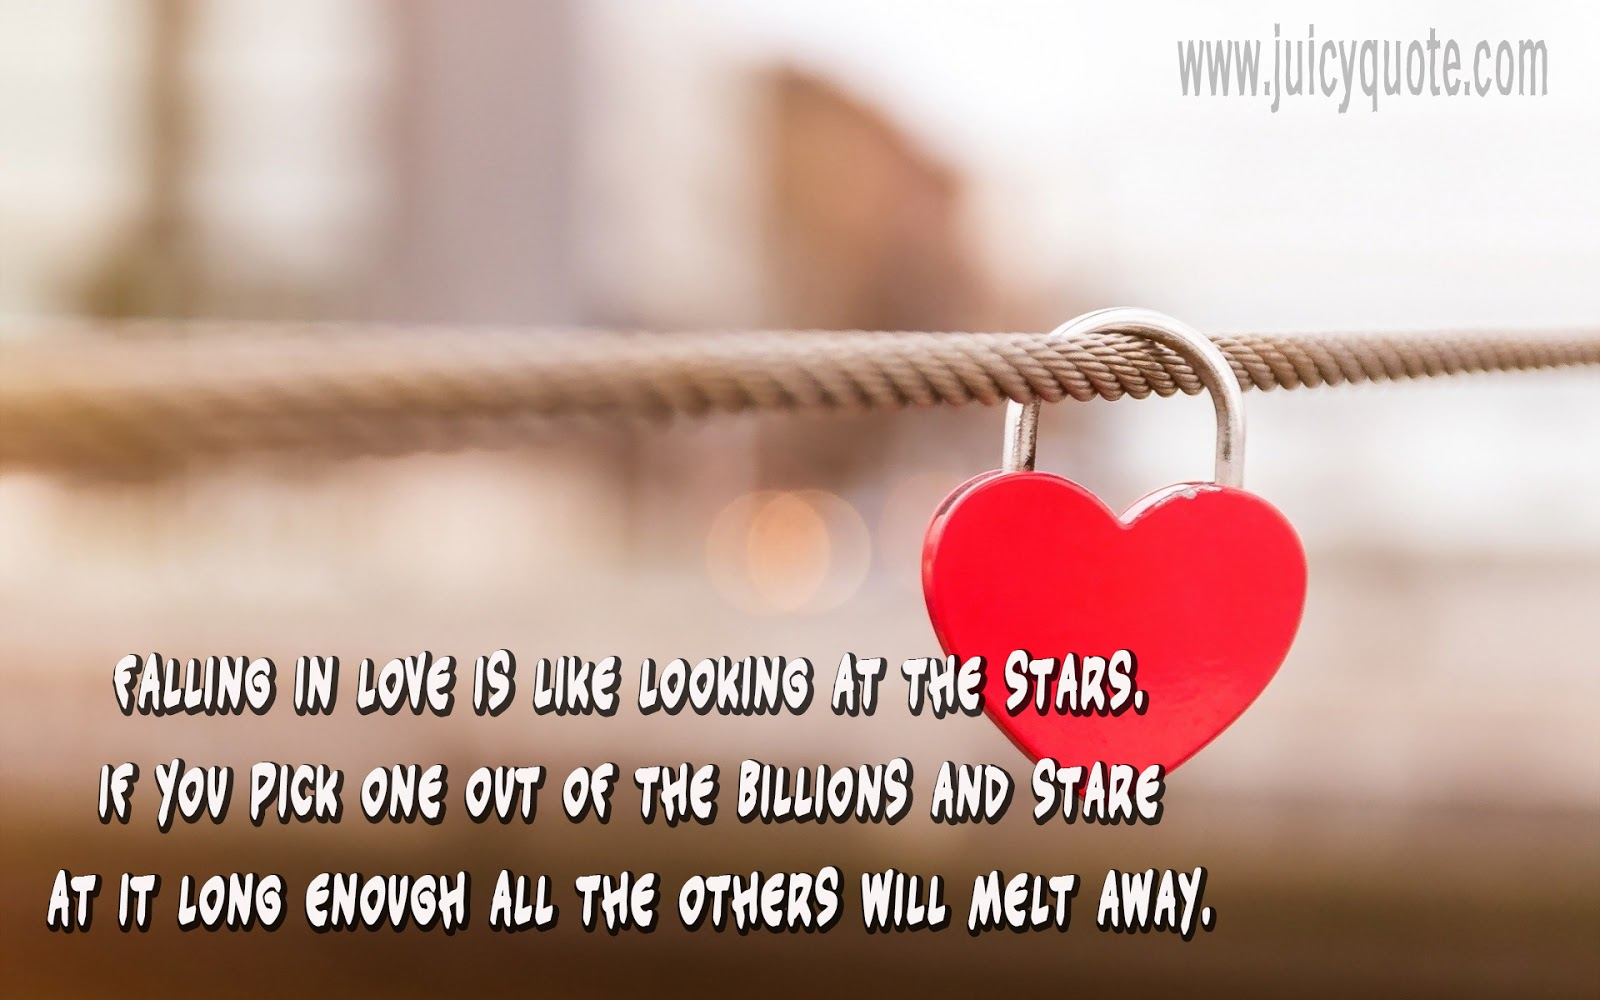 Love Quote Of The Day For Him Beautiful Valentine's Day Quotes And Messages For The Husband